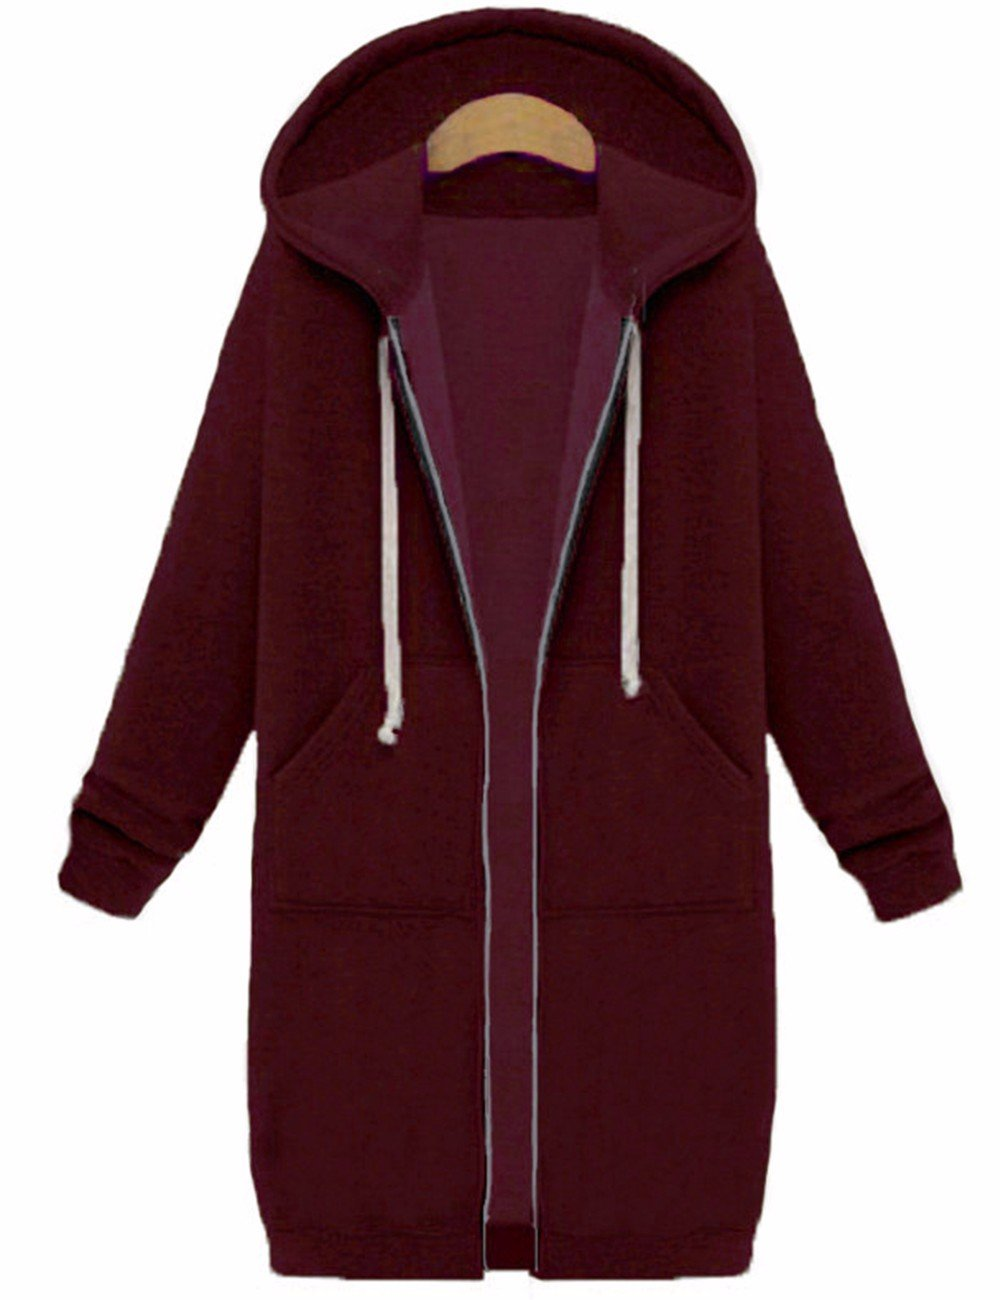 Sexyshine Women's Casual Loose Zip up Long Hoodies Sweatshirt Outerwear Jacket Tunic Coat with Pockets (5XL, Wine Red)